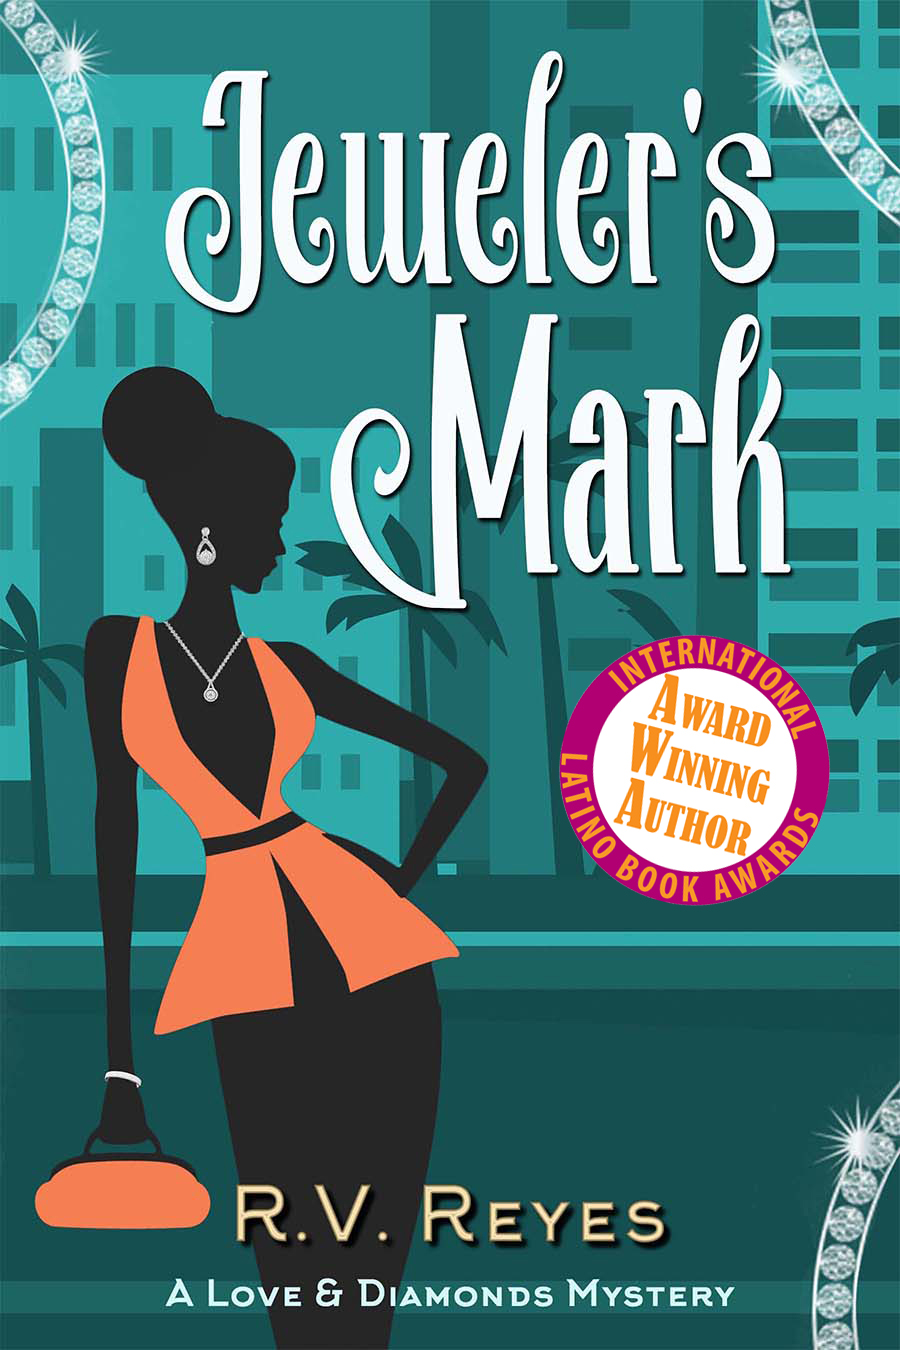 Cozy in miami page 2 adventures with a mystery writer jewelers mark w award fandeluxe Choice Image